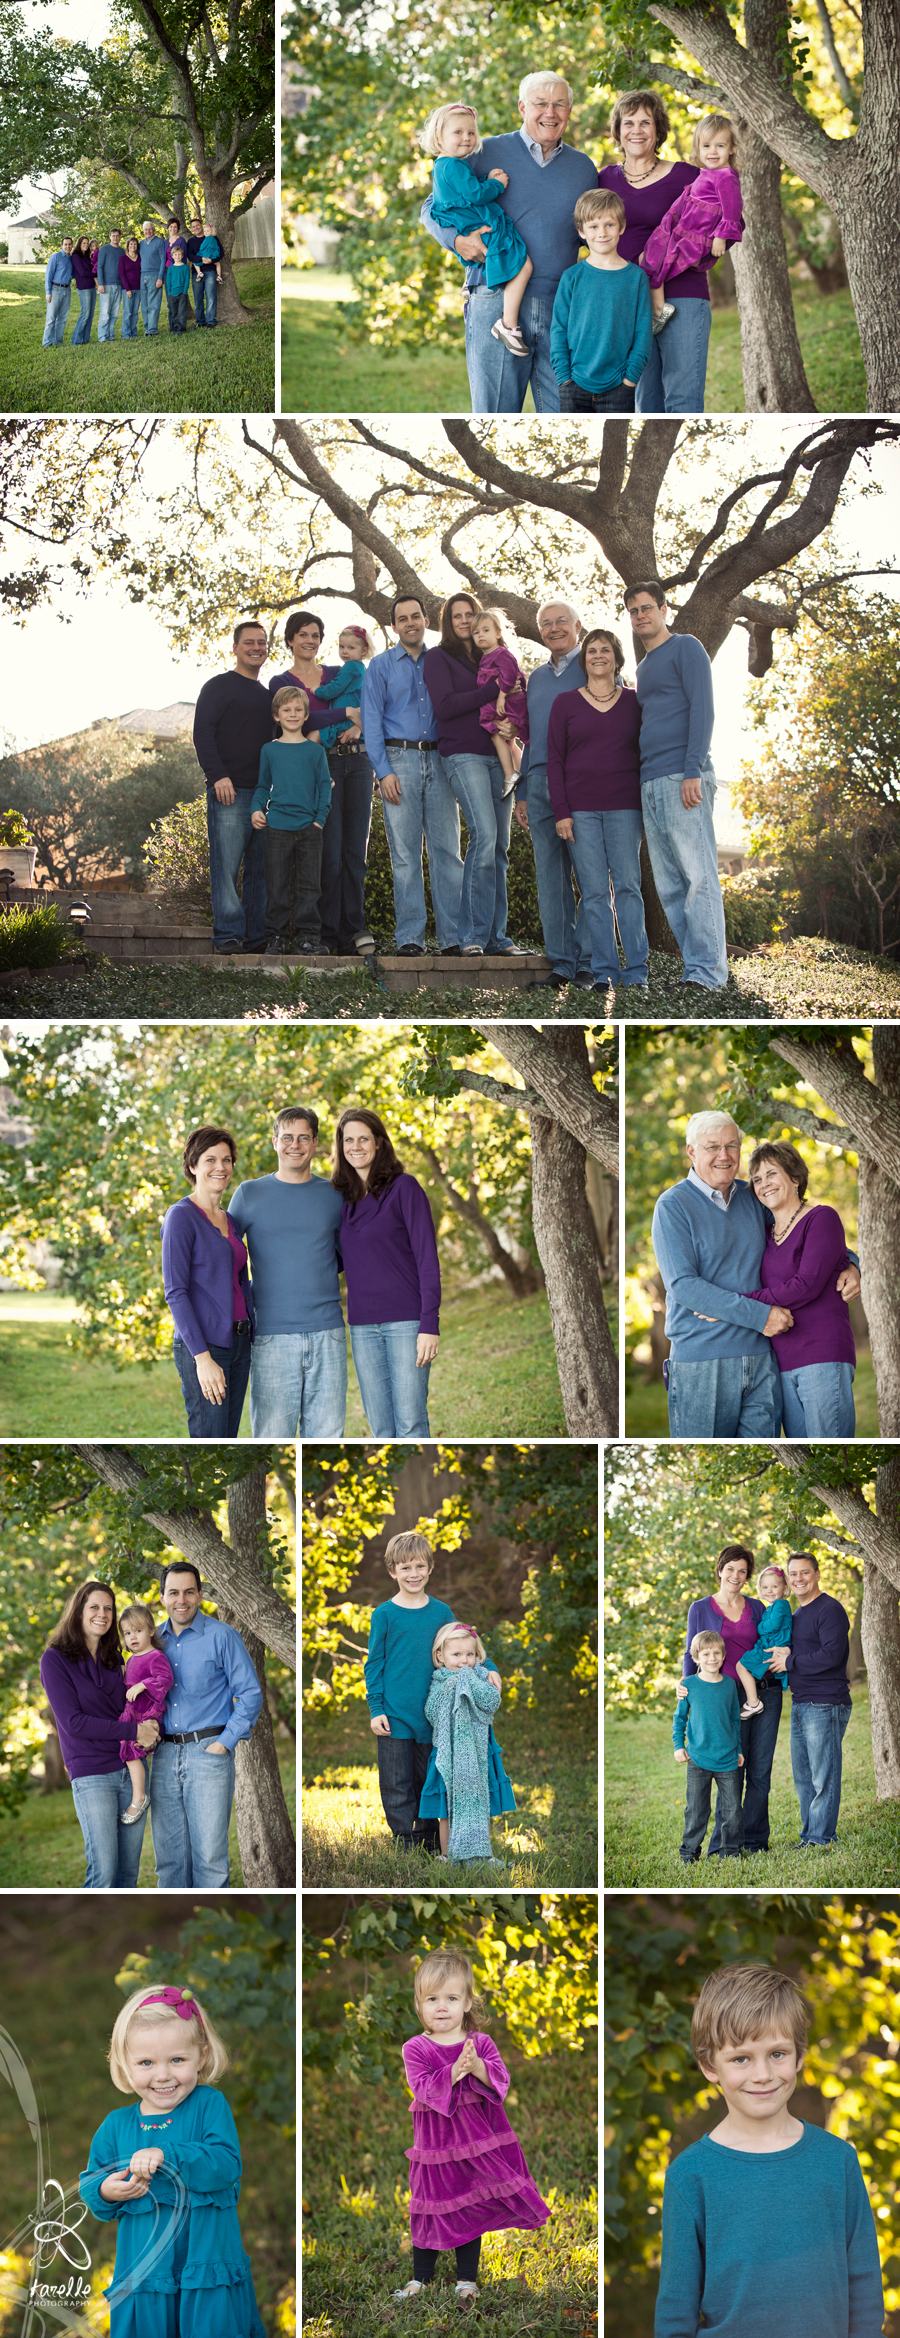 Requadt Family photo session by Karelle Photography in Houston